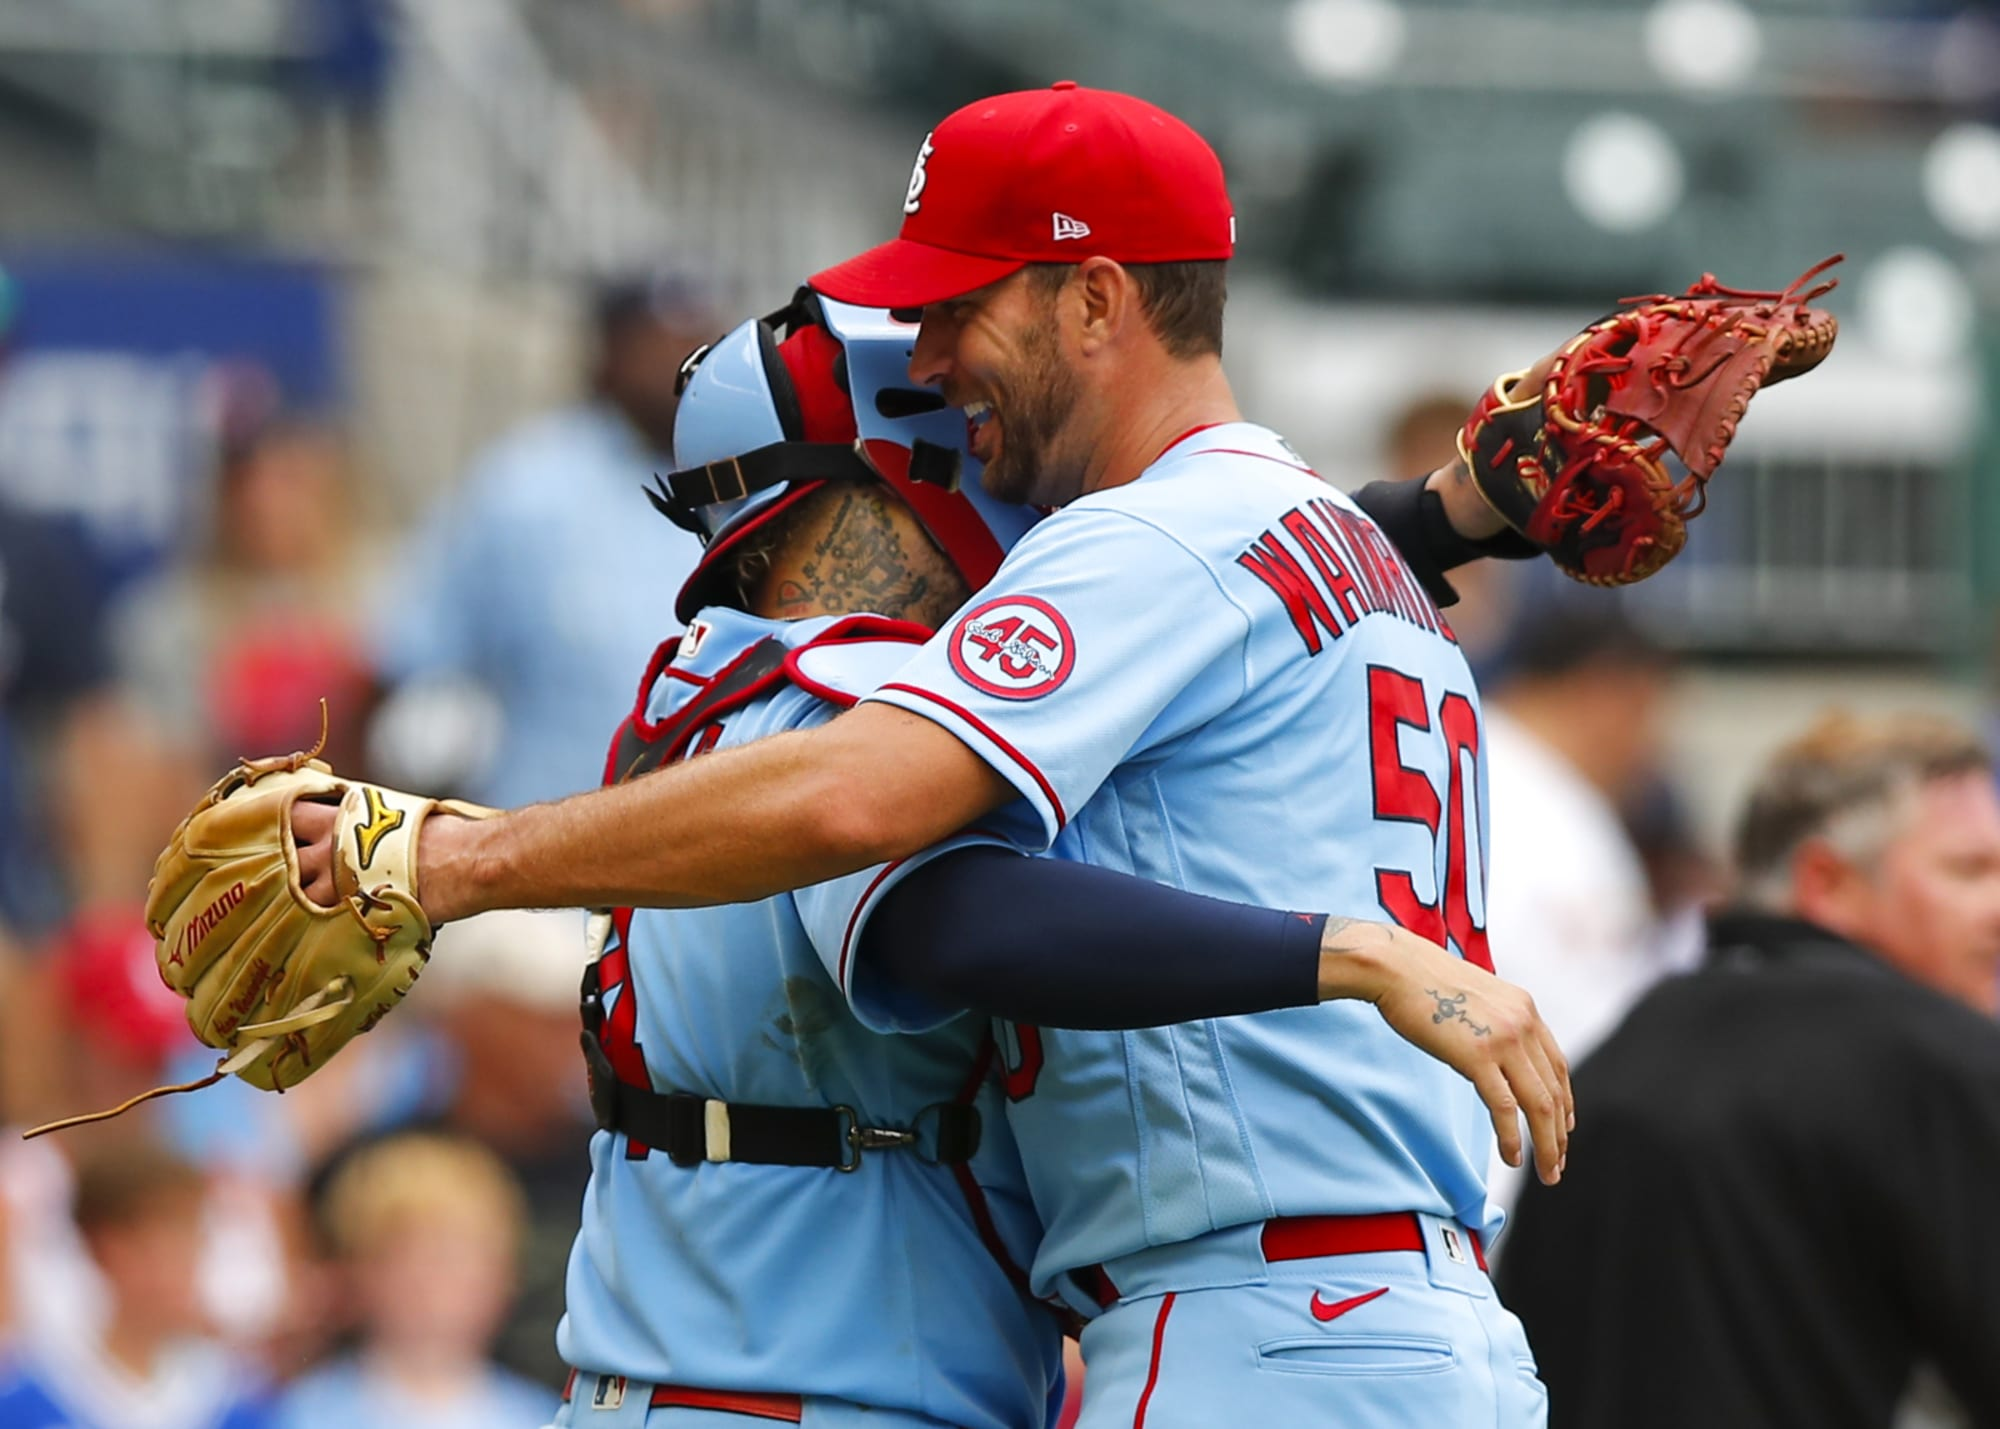 St. Louis Cardinals remain ugly in Atlanta against Braves